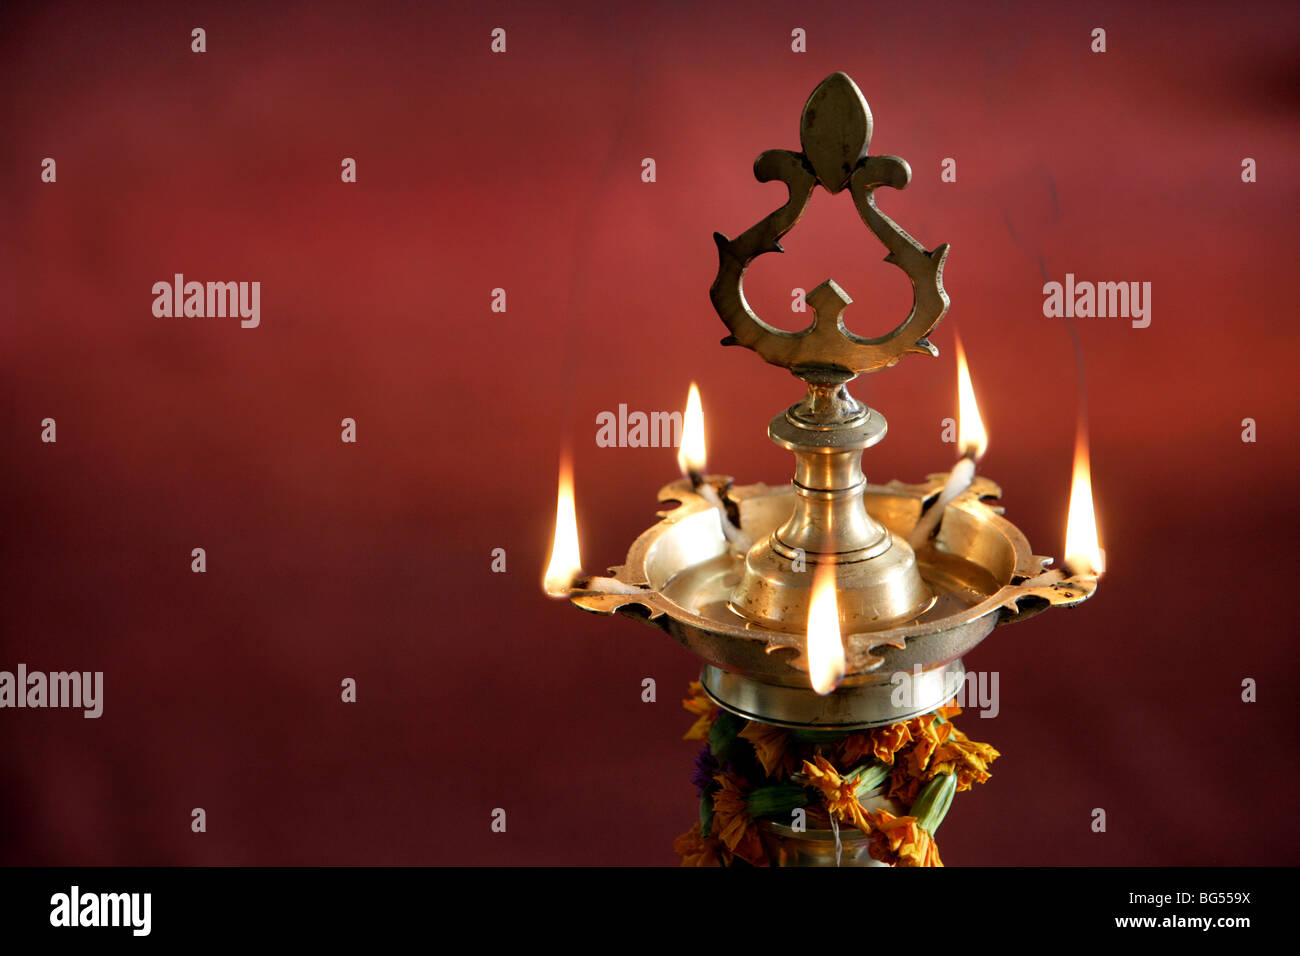 Oil candle, sacred flame, India - Stock Image